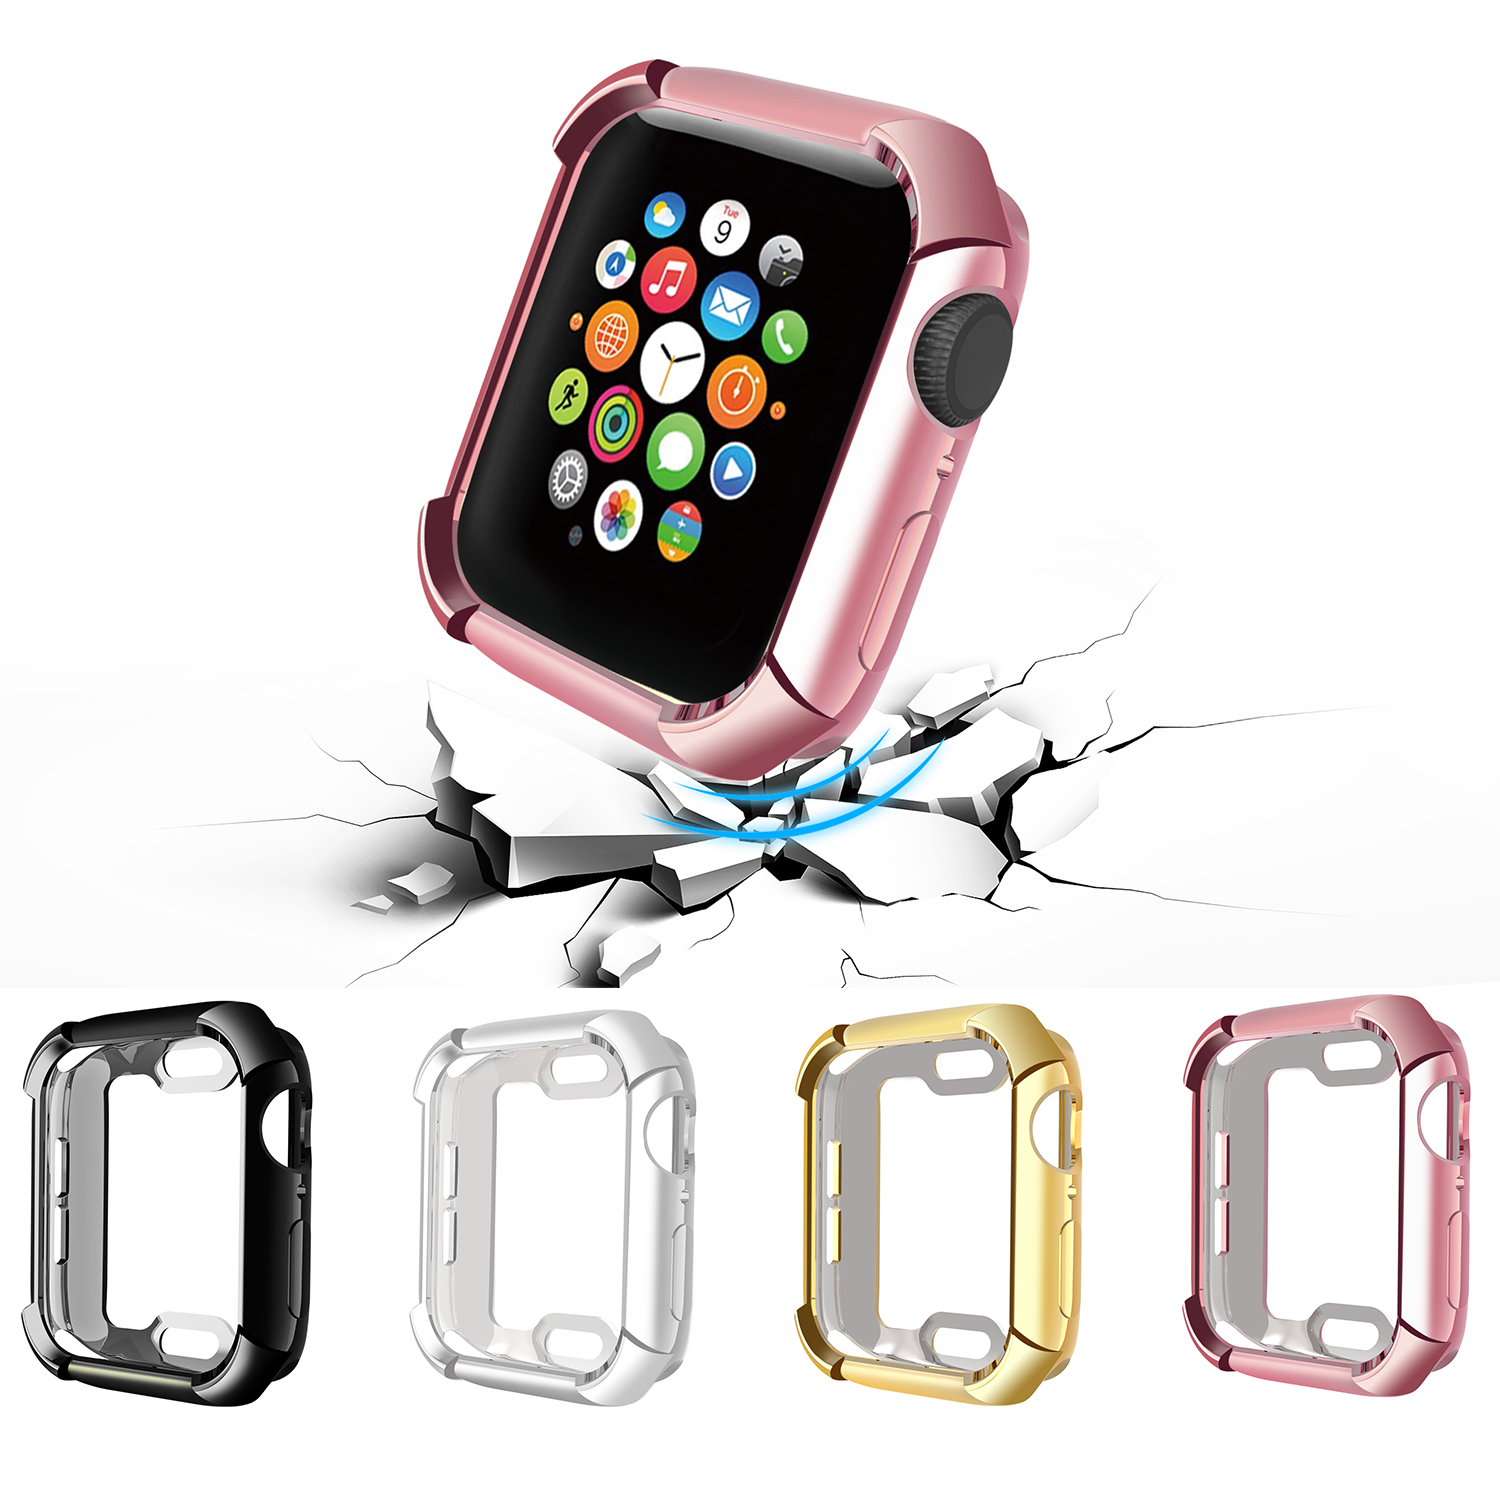 Protector Case For Apple Watch 5/4 40mm 44mm  Full Protect Fall-proof Plating TPU Cases For IWatch Series 5 4 42mm 38mm